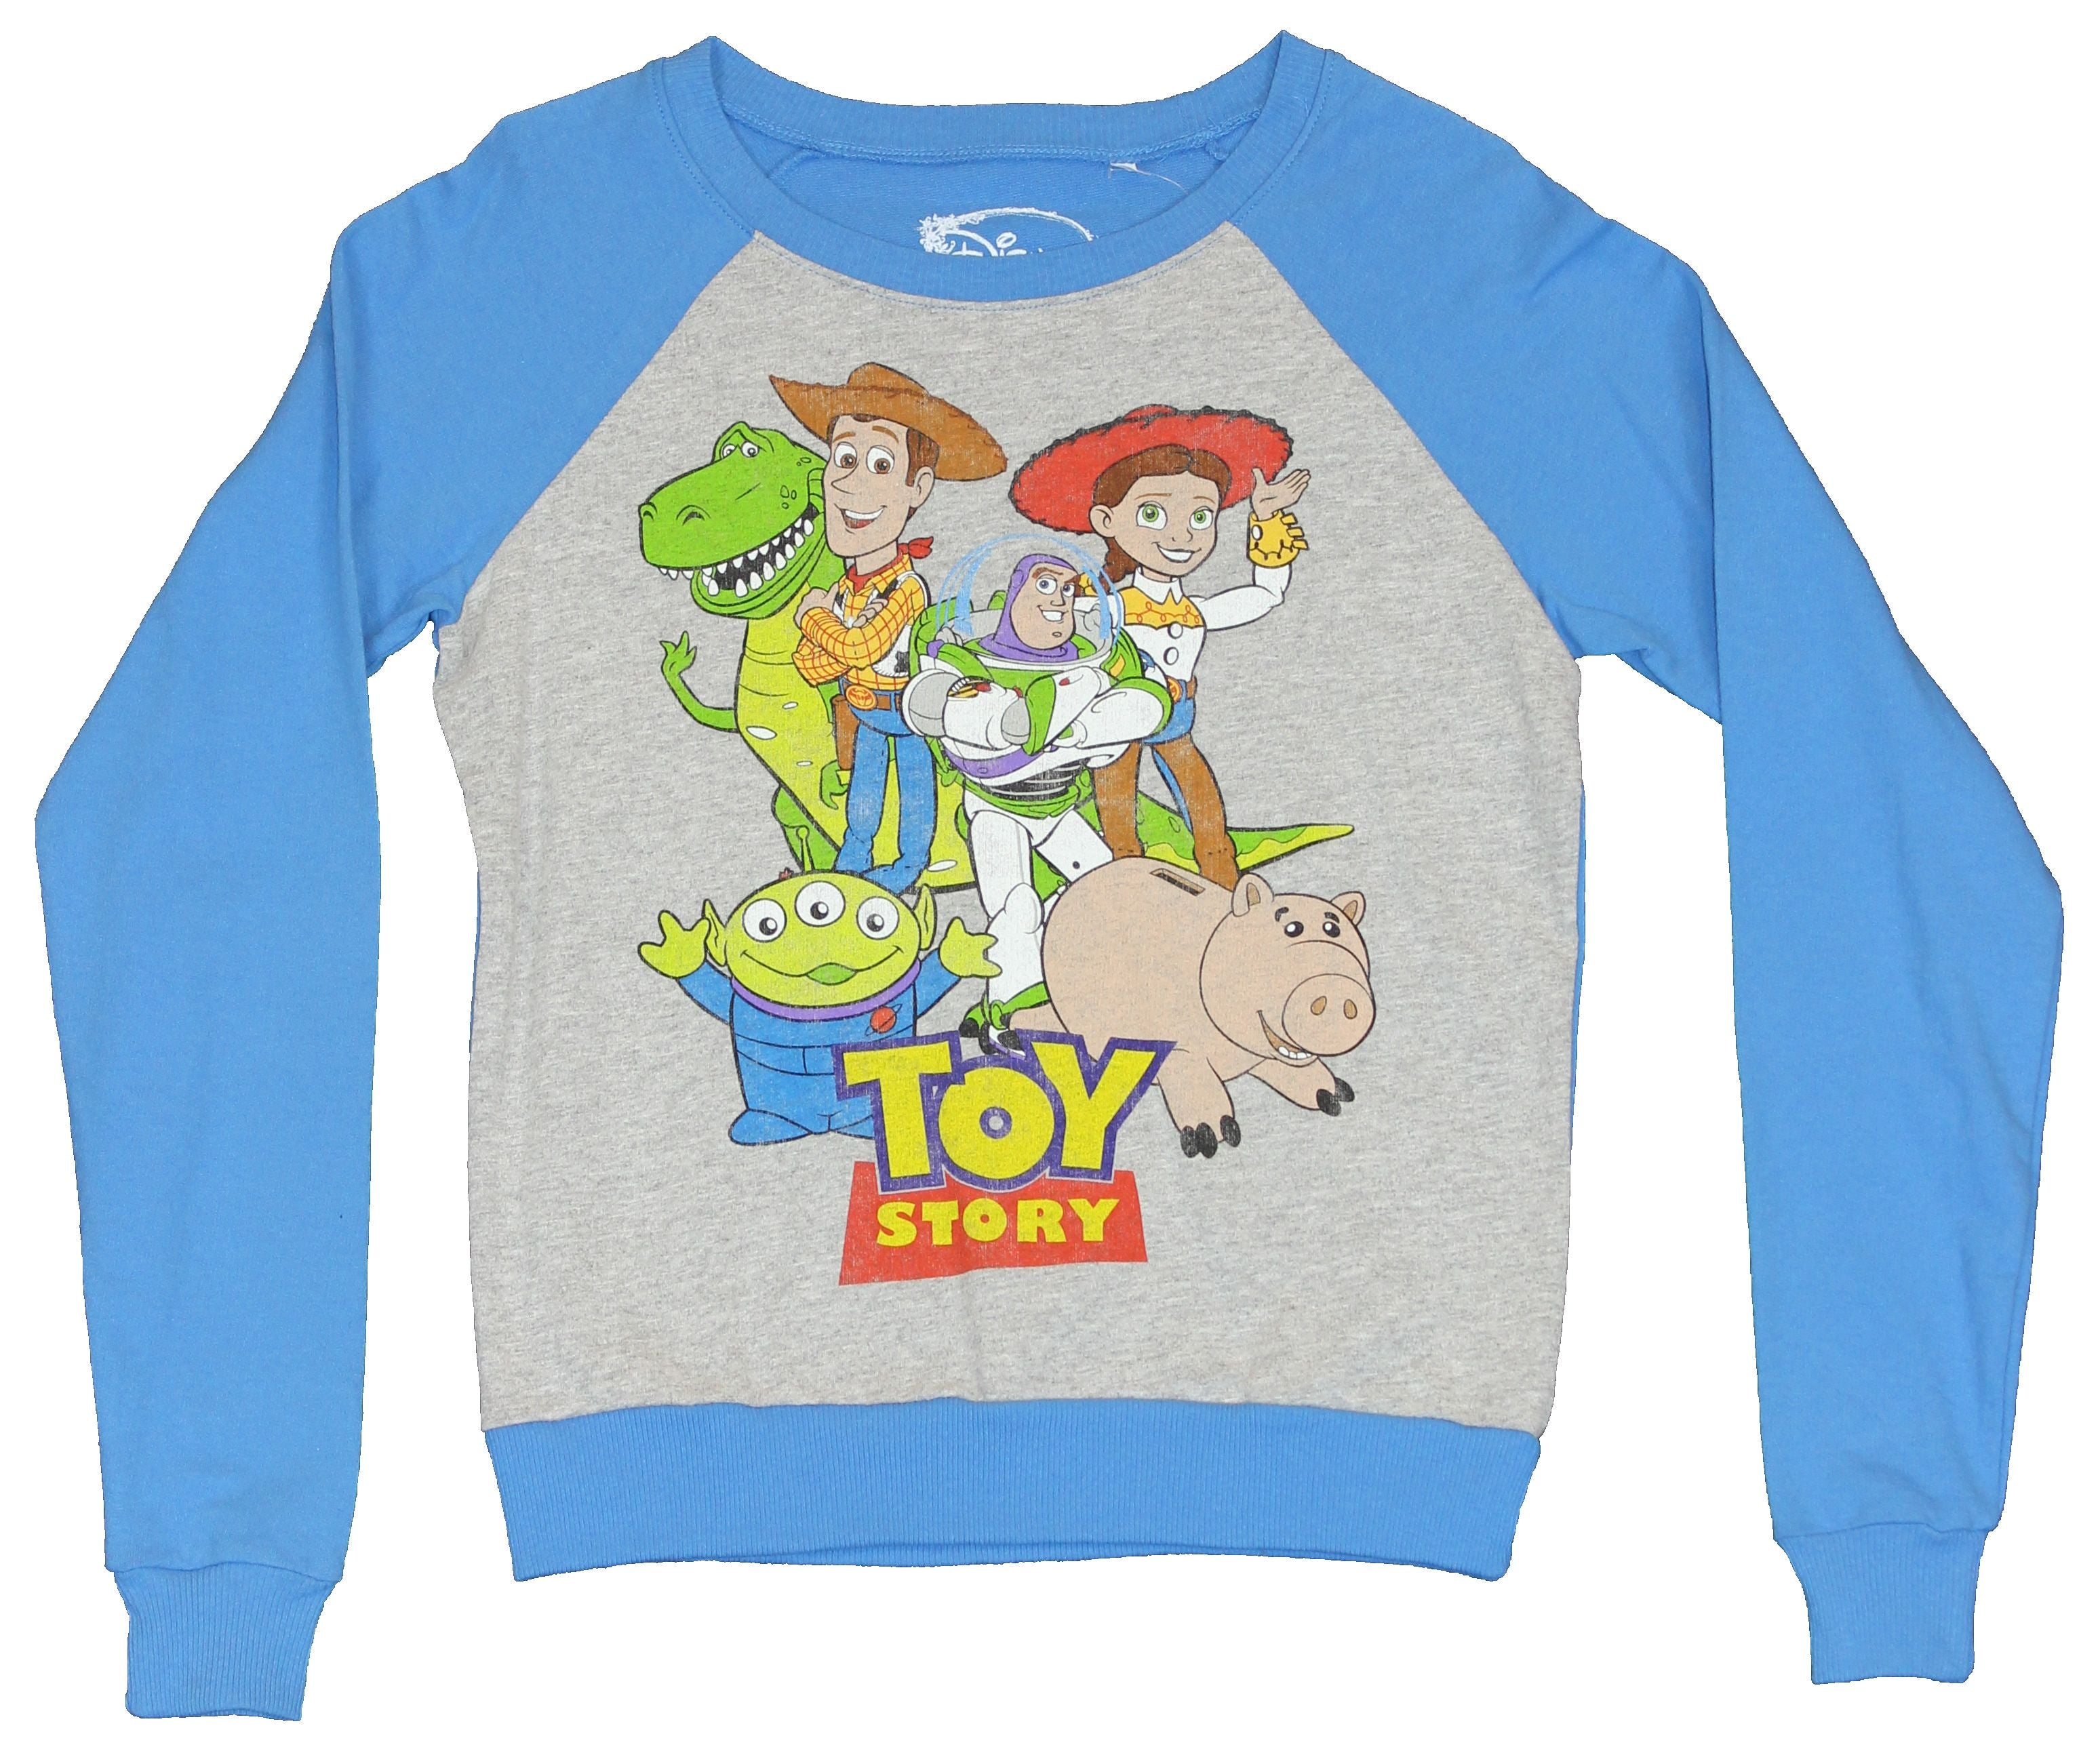 Toy Story Girls Juniors Light Sweatshirt Shirt -  Group Cast Picture